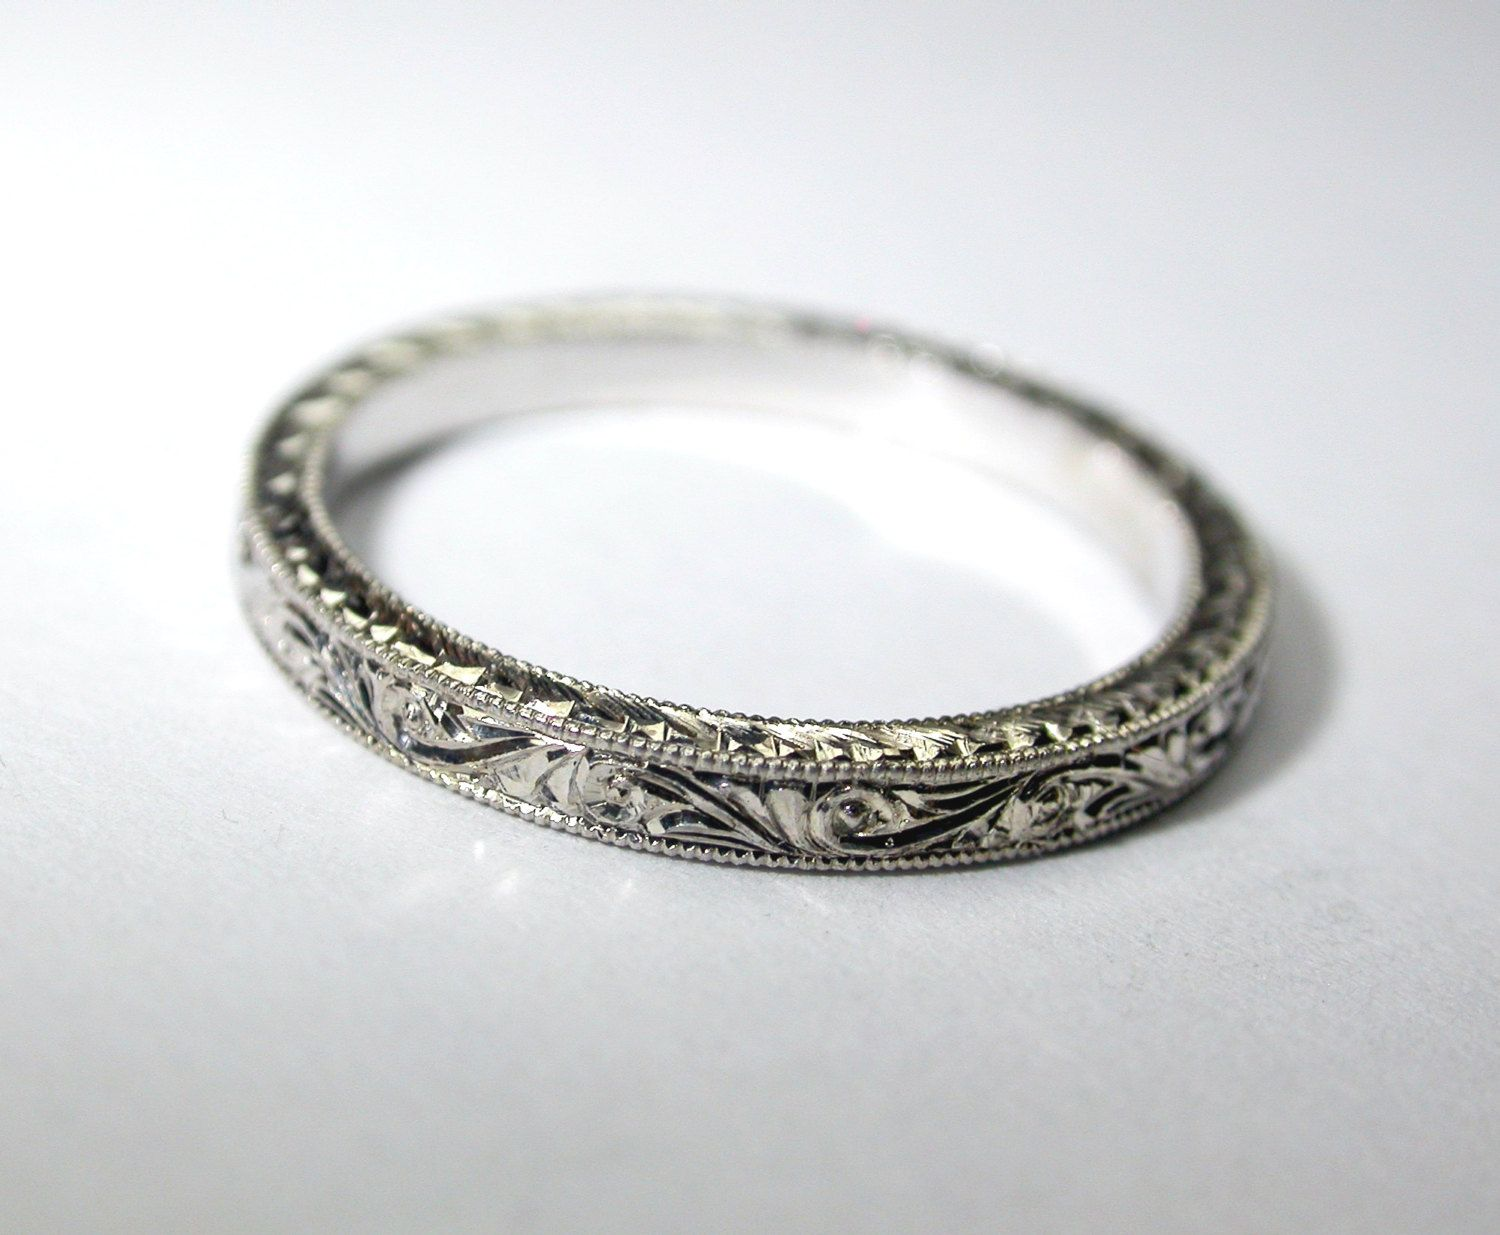 Hand Engraved Platinum Wedding Ring Band 2 by konstantinkapirin